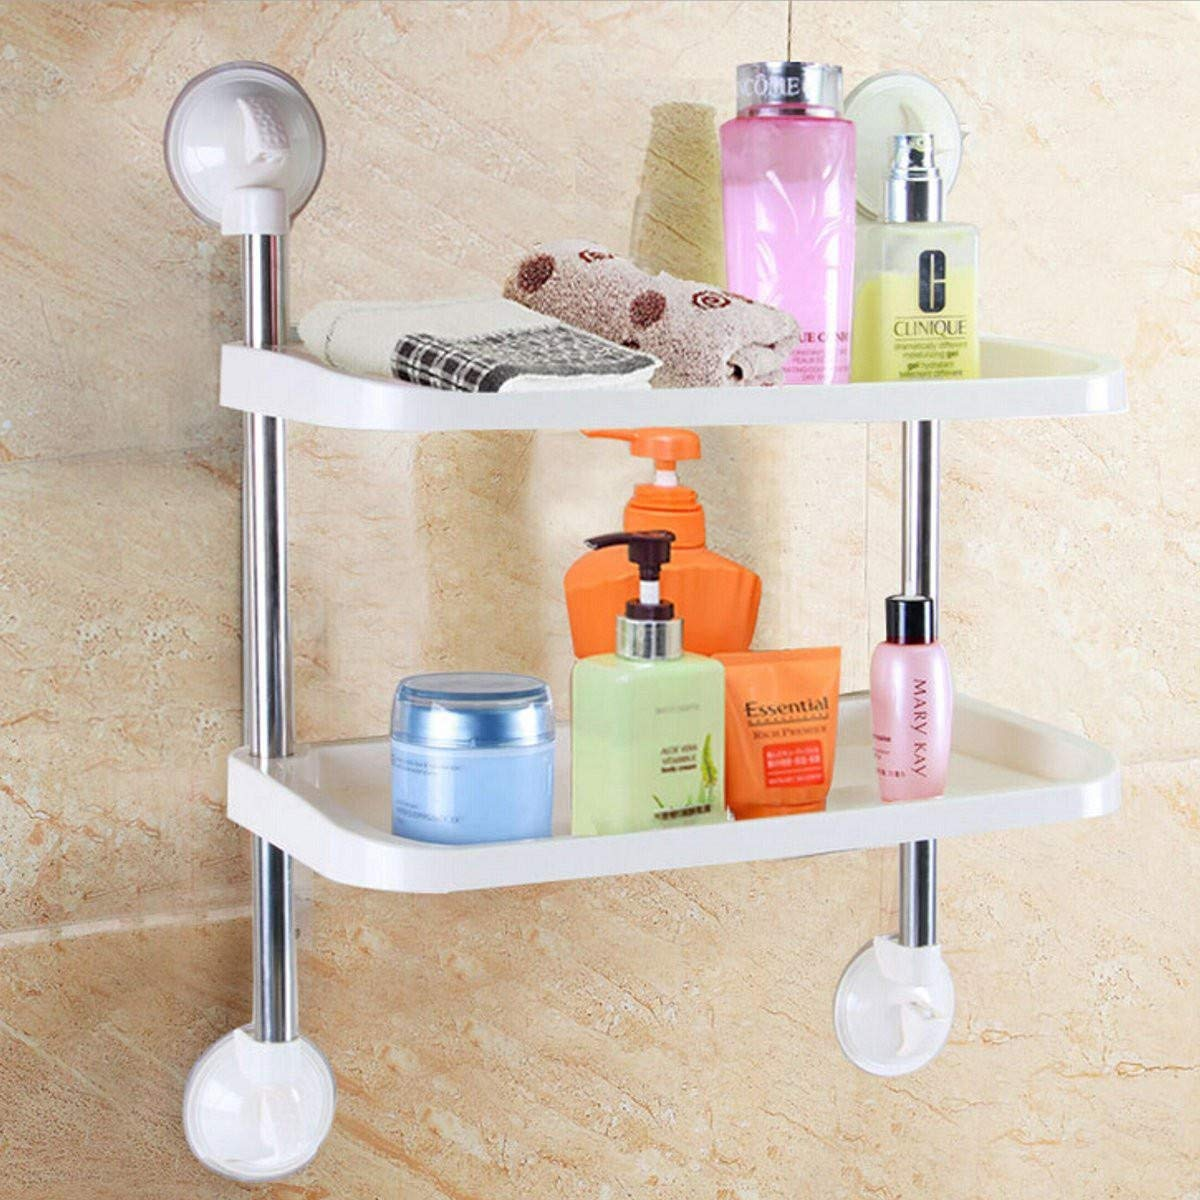 Bathroom Shelf Suction Cup - Suction Cup Plastic Shelf - Double-layer Bathroom Storage Hanger Rack Kitchen Strong Chuck Suction Cup Commodity Shelf Holder - Pink (Bathroom Suction Cup Hanger)